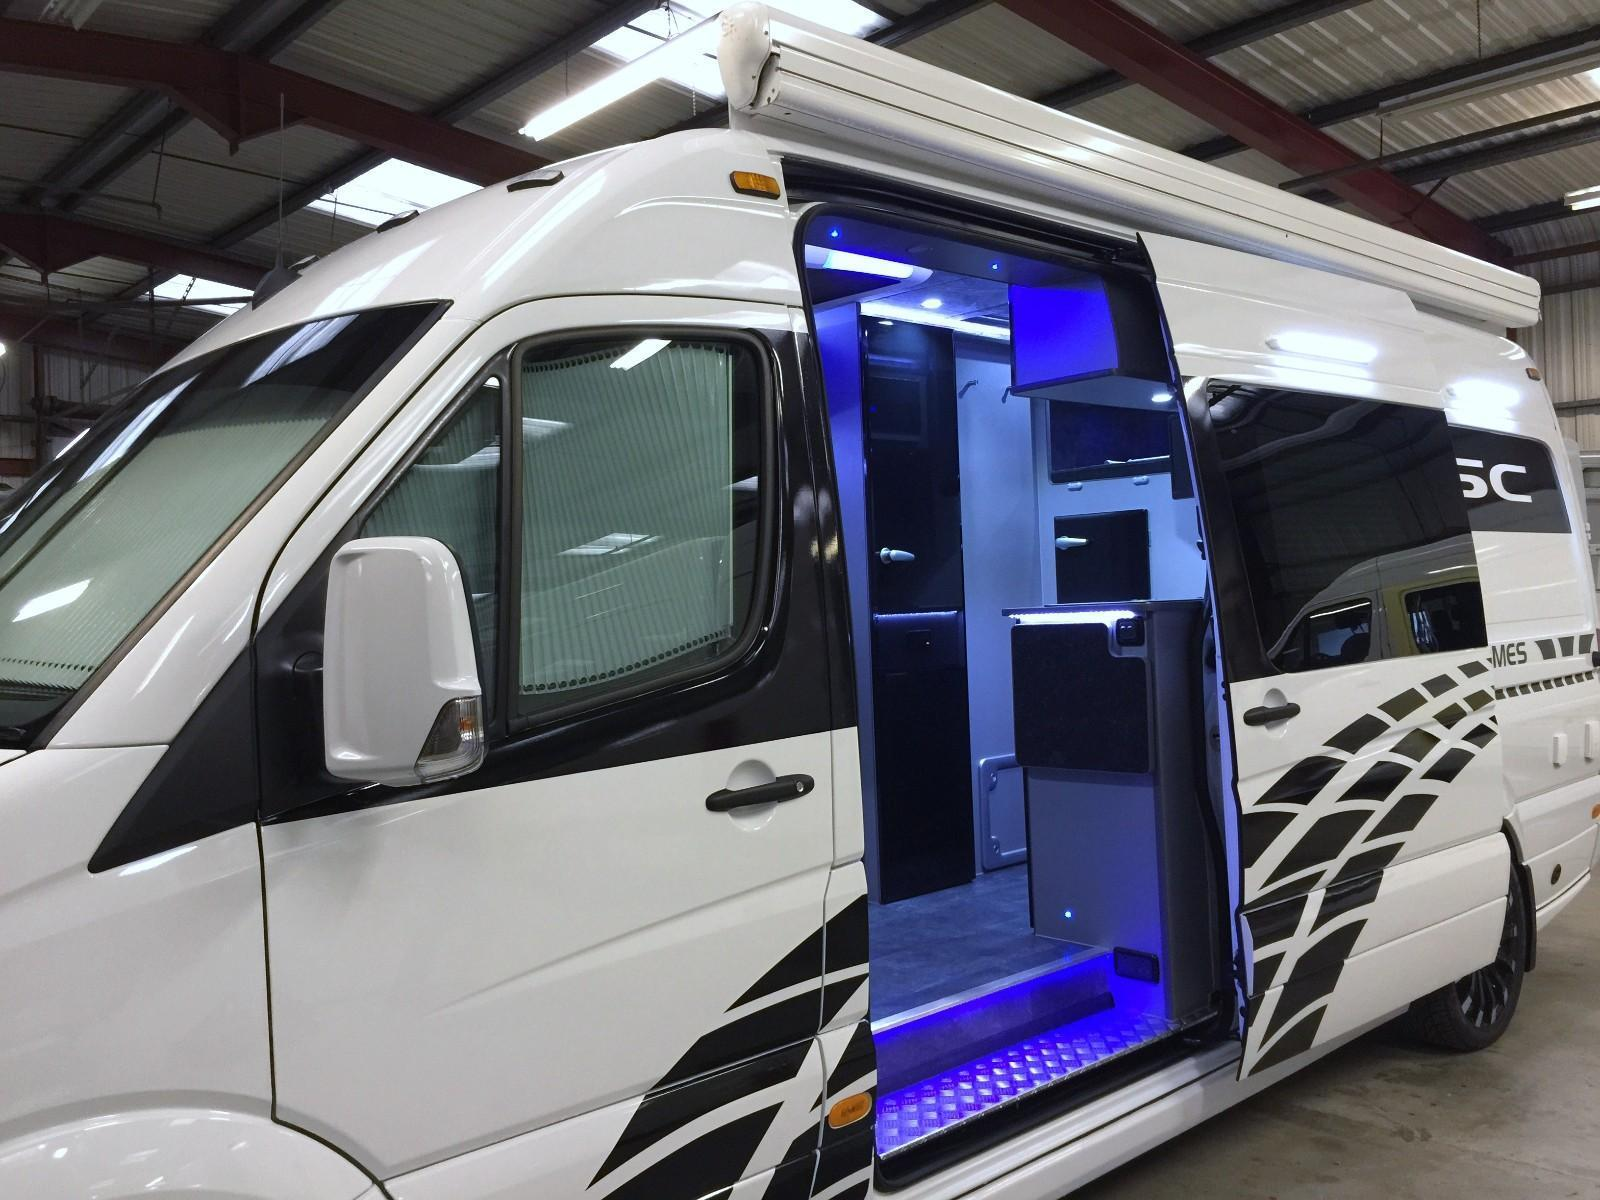 Sprinter Van Camper >> Campervan Conversions - A Buyers Guide - THIS MOVING HOUSE